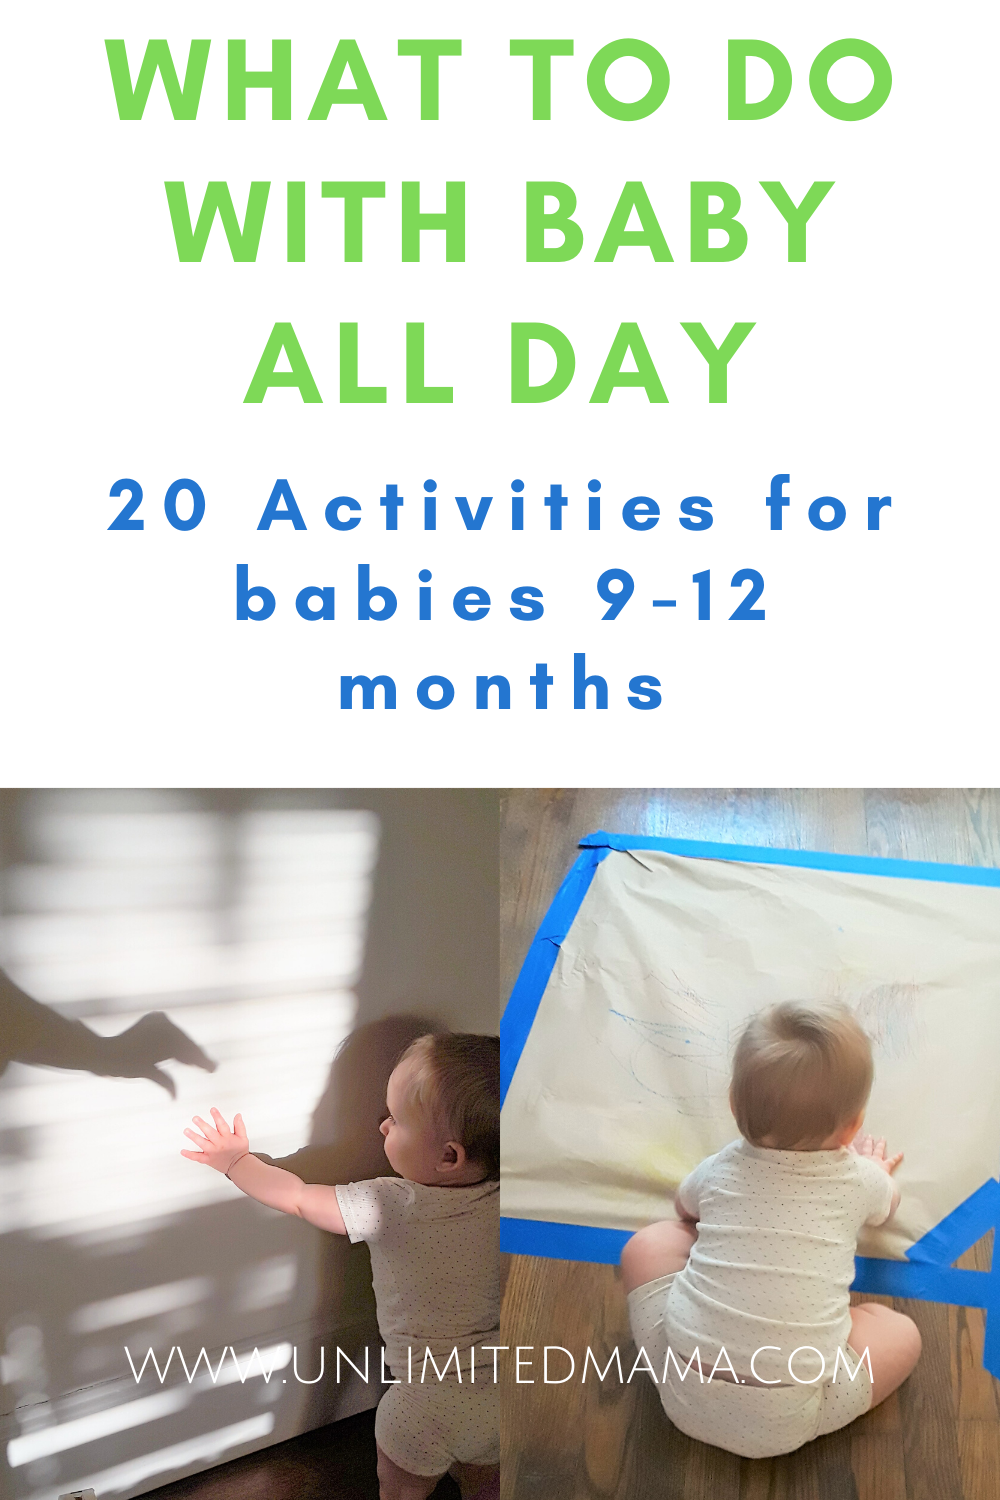 Fun And Easy Baby Activities For 9 12 Months Old Babies In 2020 Infant Activities 10 Month Old Baby Activities Baby Play Activities